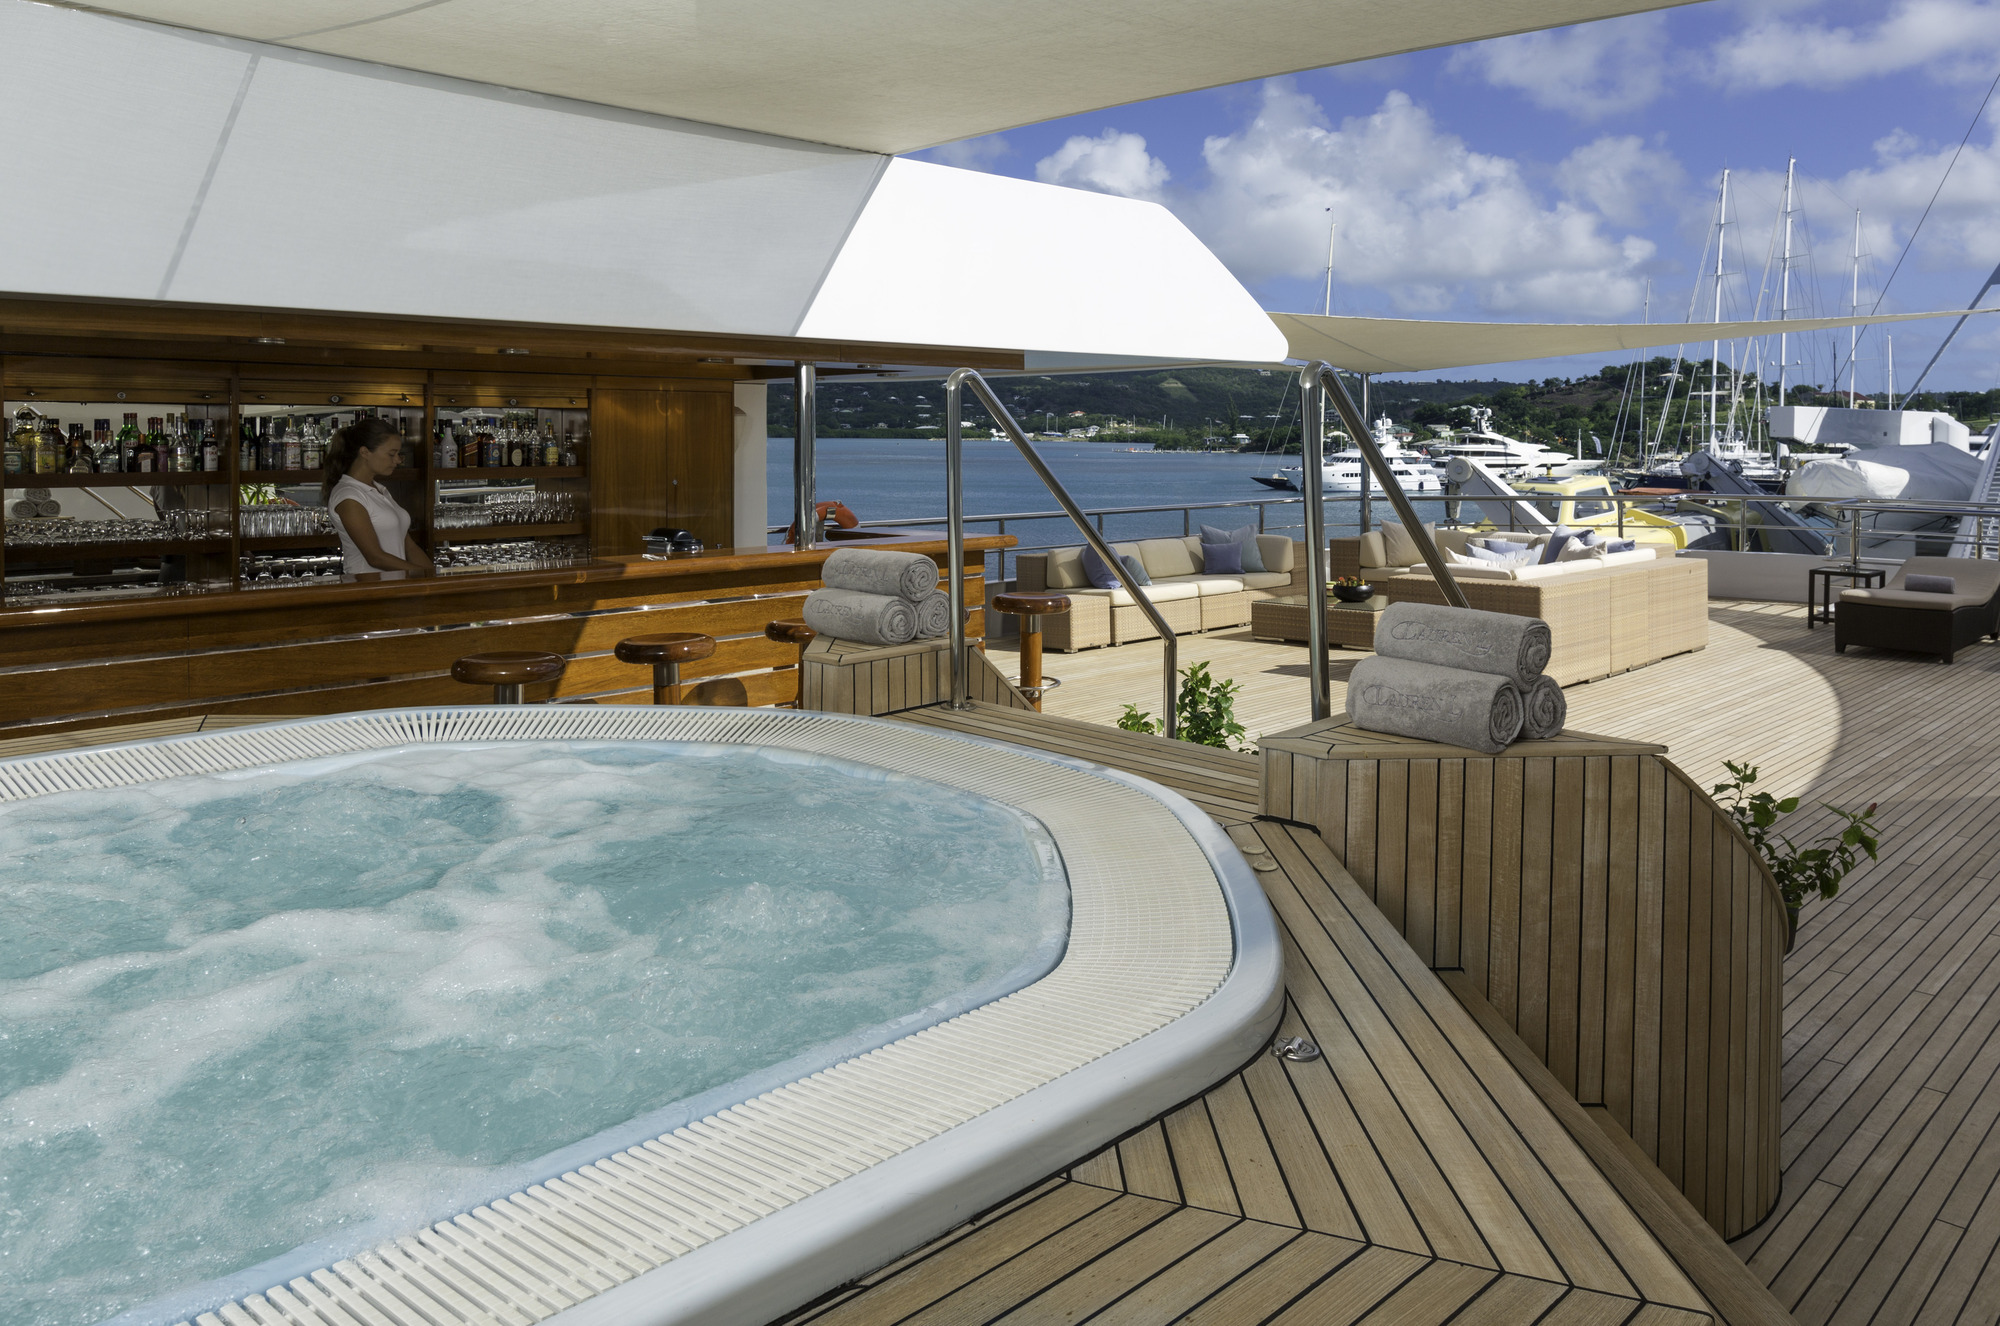 On board Jacuzzi and a fully equipped exterior bar